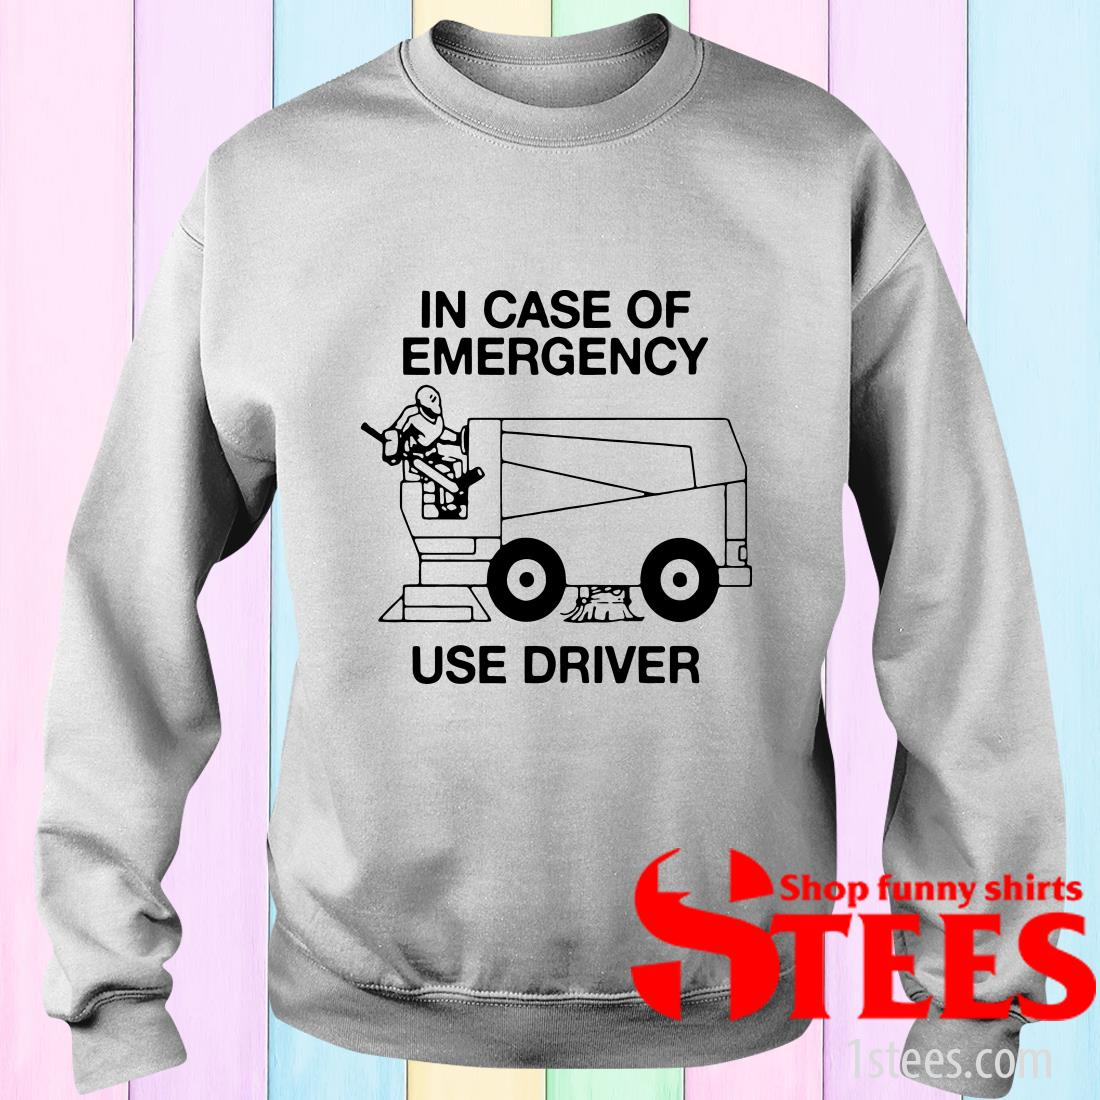 In Case Of Emergency Sweater